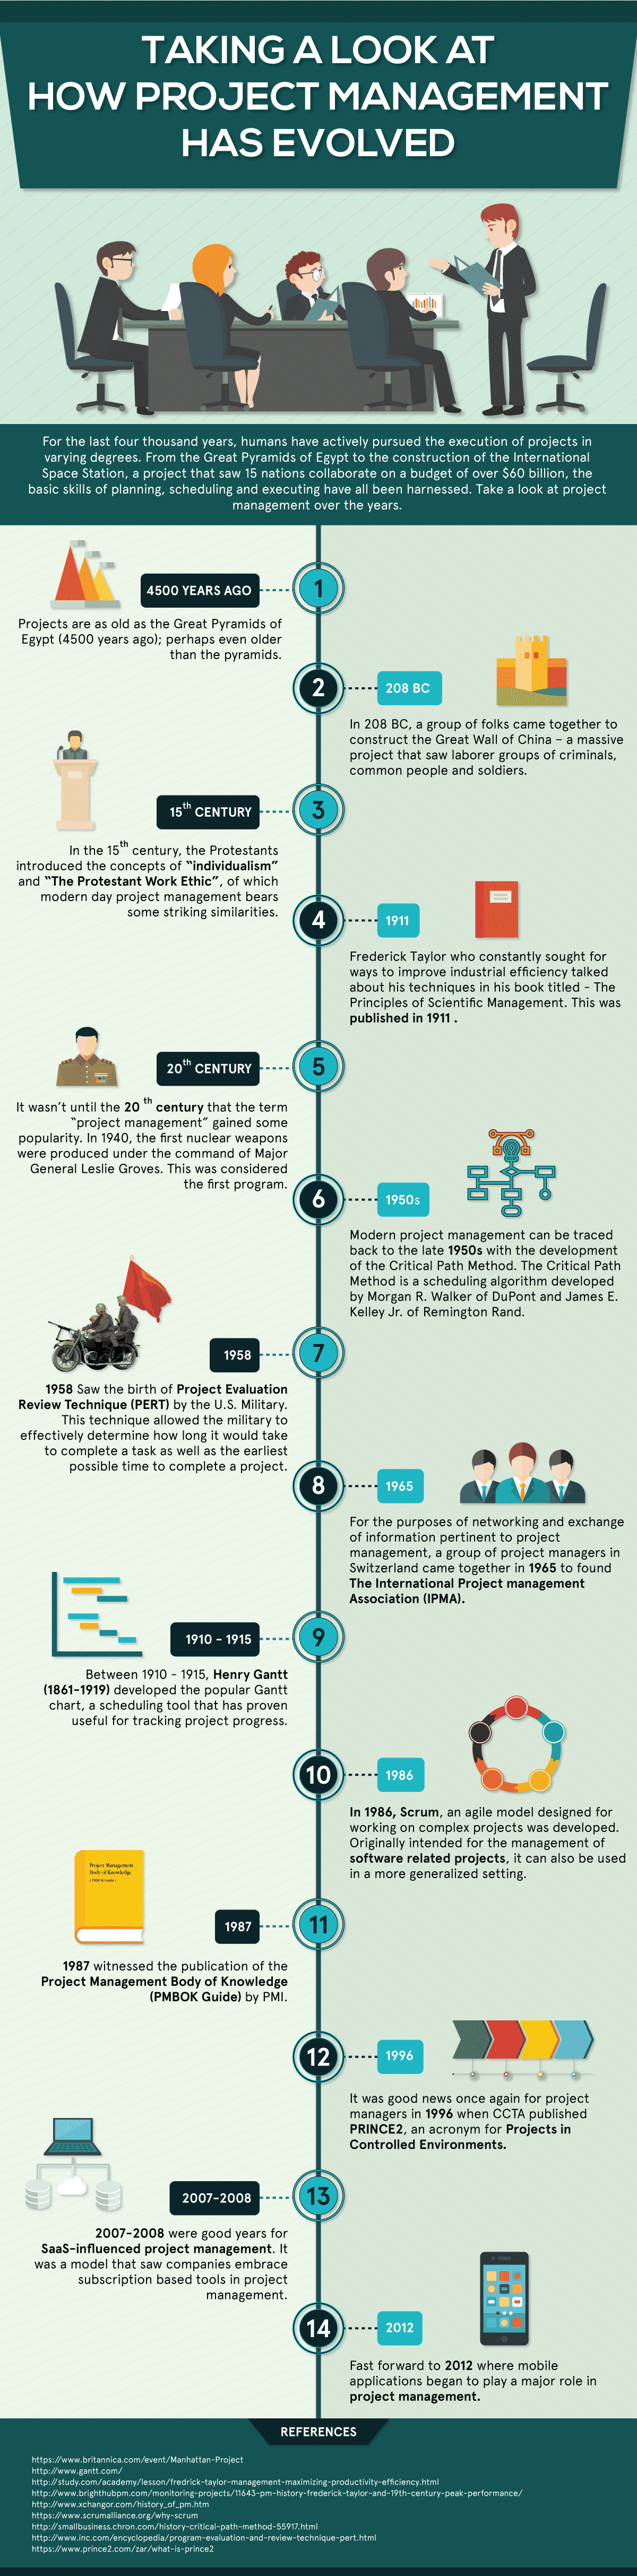 The history and evolution of project management.